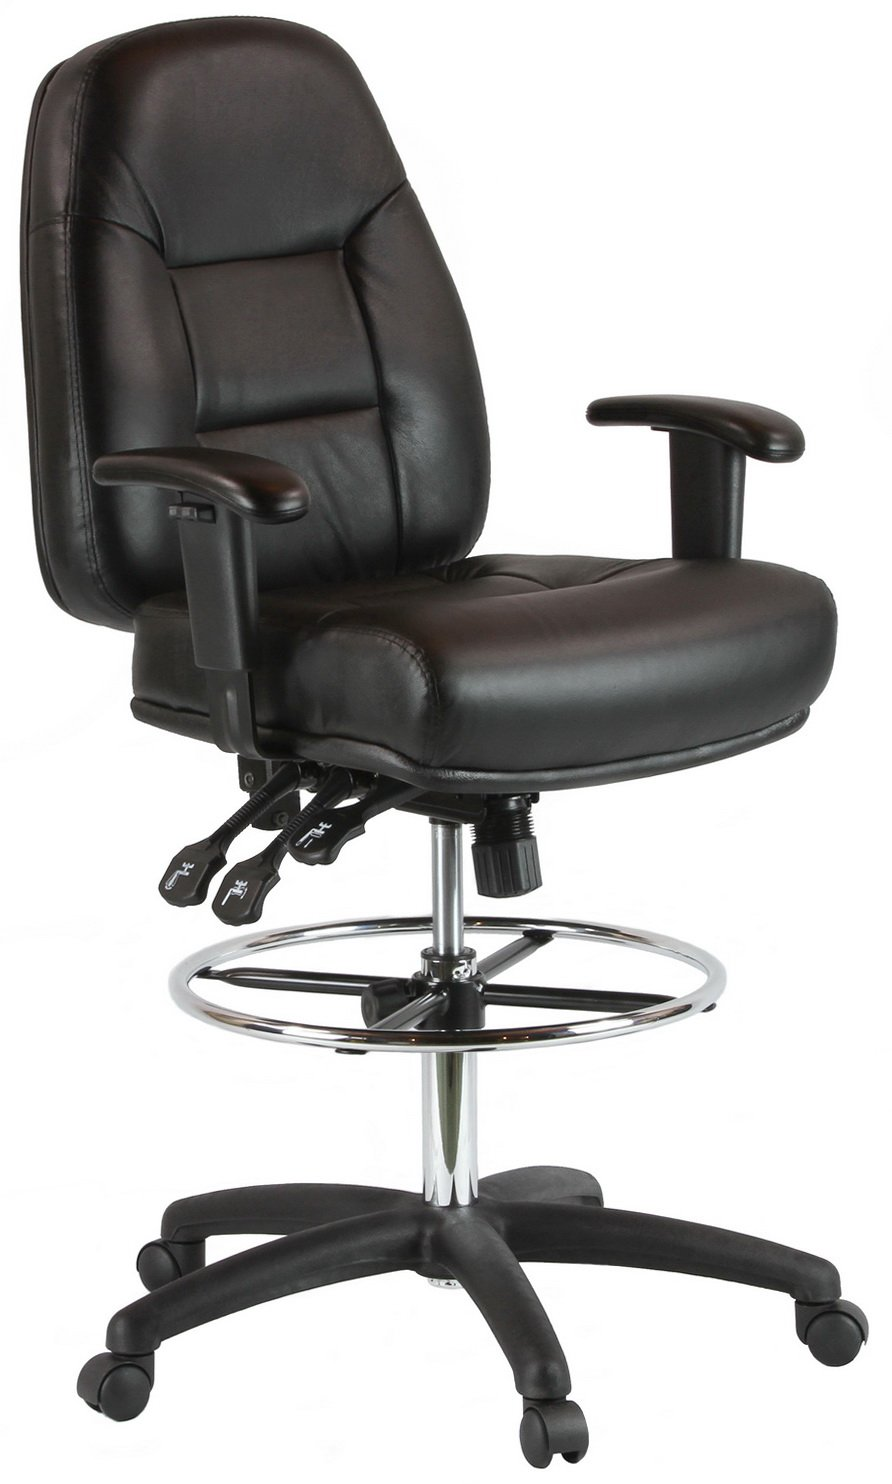 Amazon.com Harwick Premium Leather Drafting Chair With Arms Black Kitchen \u0026 Dining  sc 1 st  Amazon.com & Amazon.com: Harwick Premium Leather Drafting Chair With Arms Black ... islam-shia.org